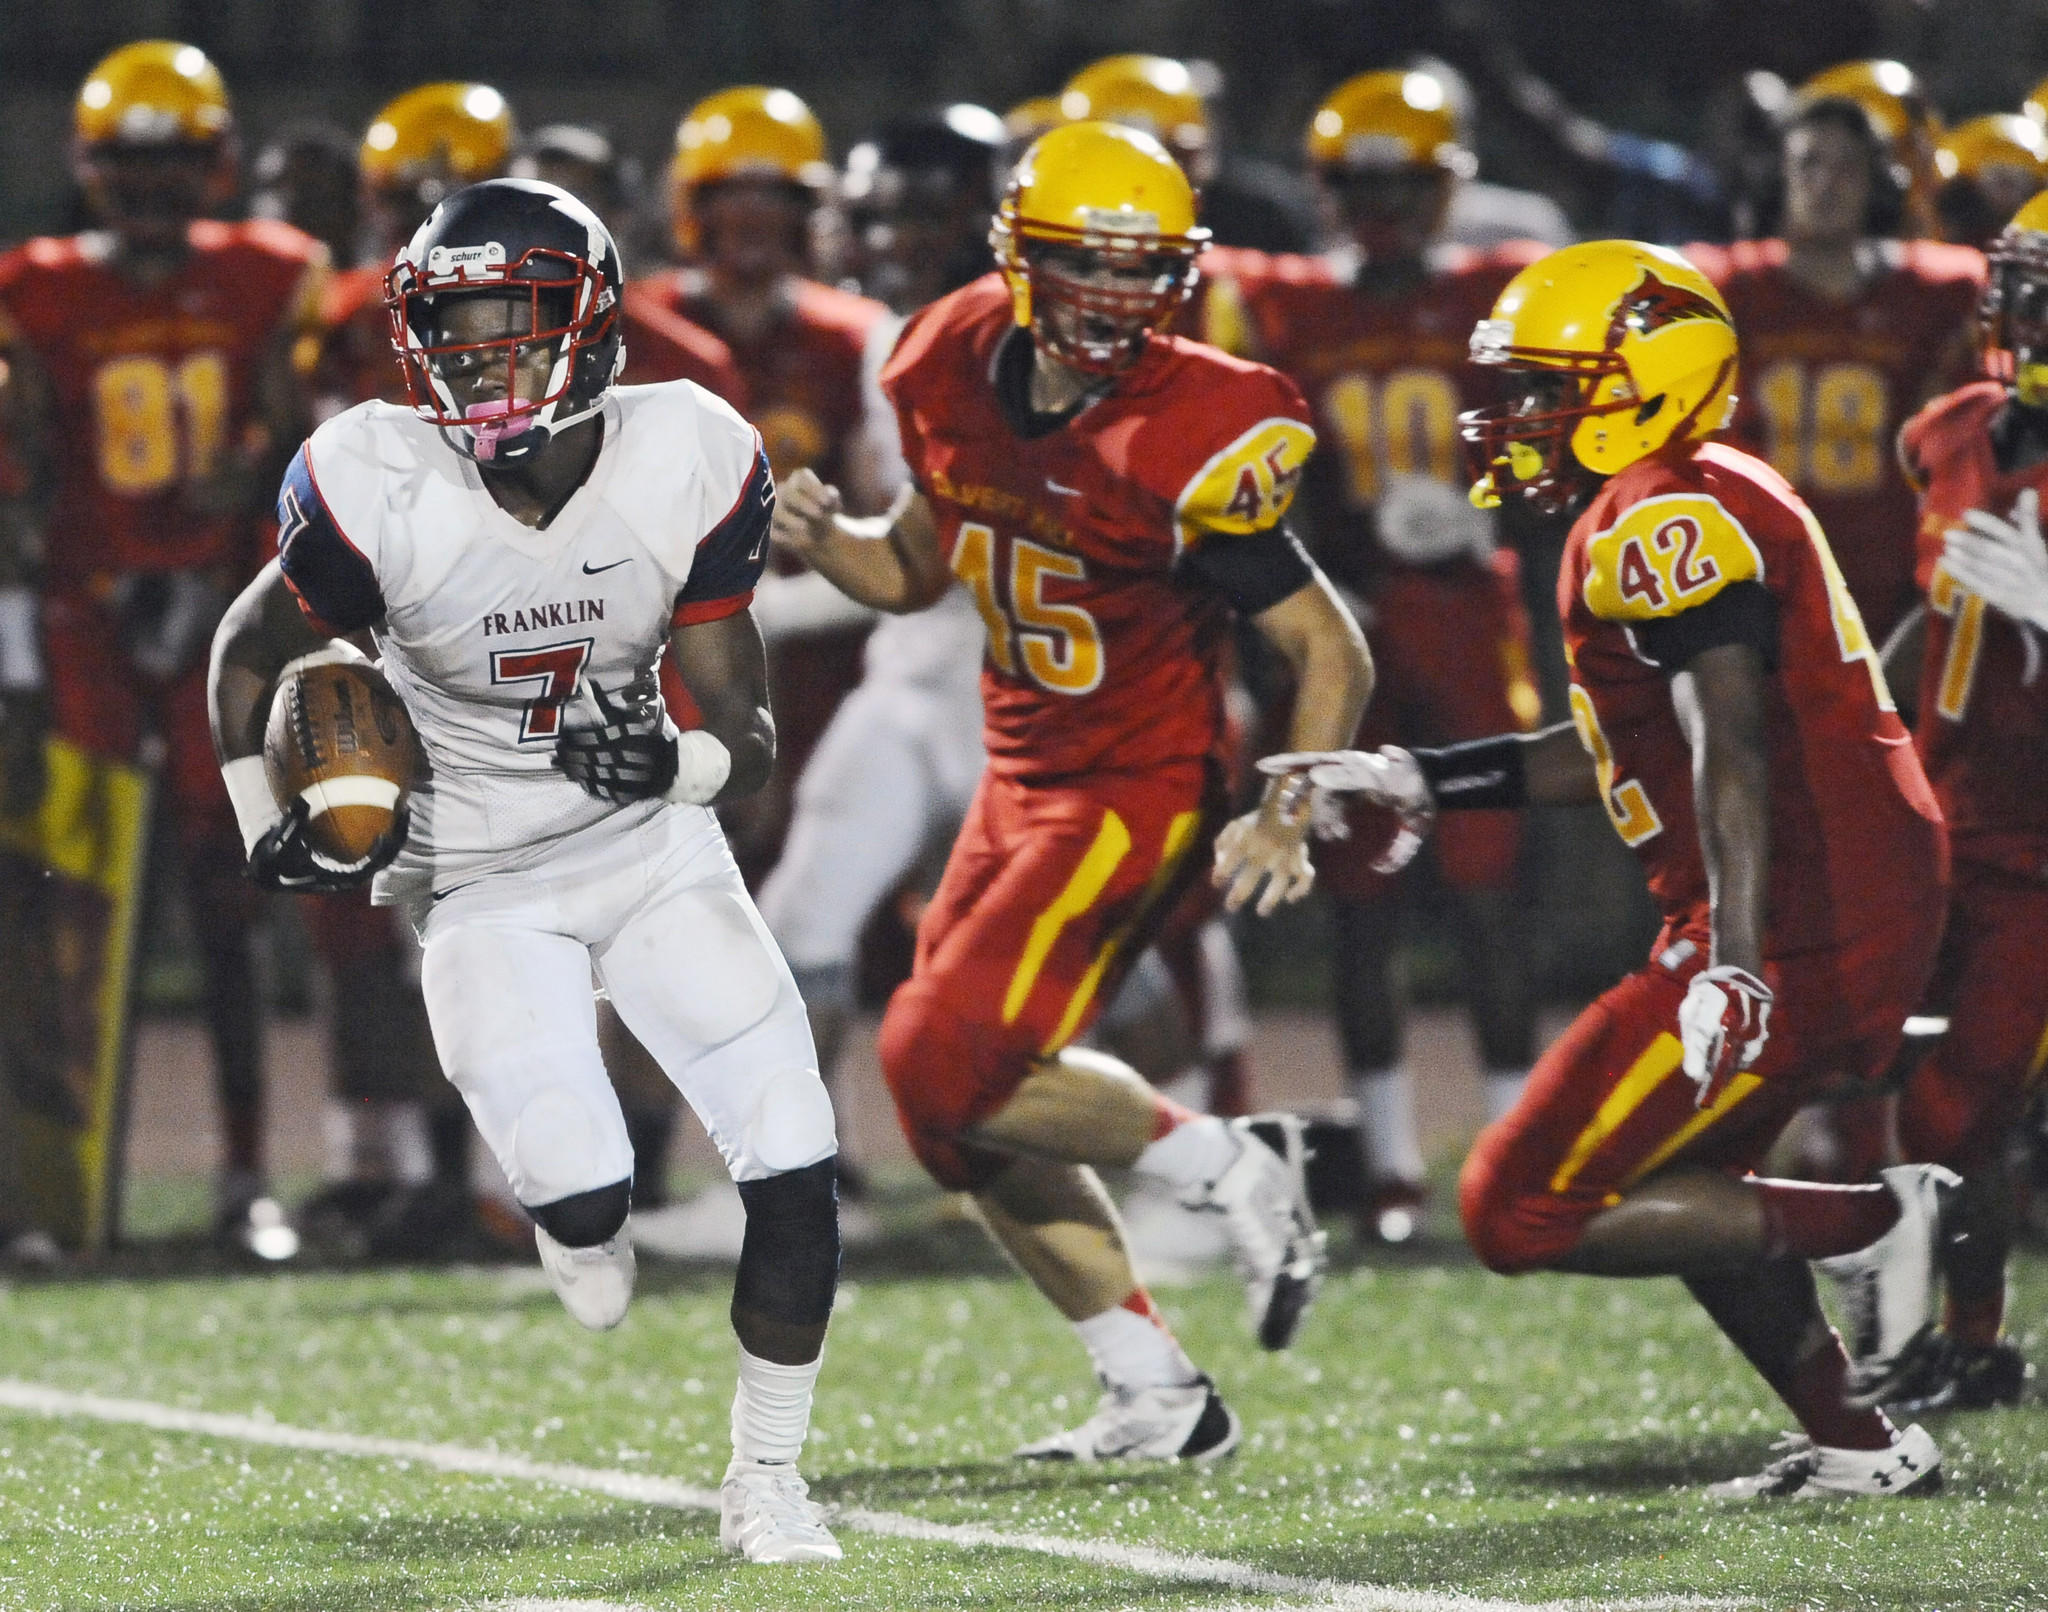 Franklin's Steven Smothers outruns Calvert Hall's Jared Wegrzyn (45) and Nick Booker (42) to return a punt 93 yards for touchdown in the third quarter. Calvert Hall defeated Franklin, 35-24.